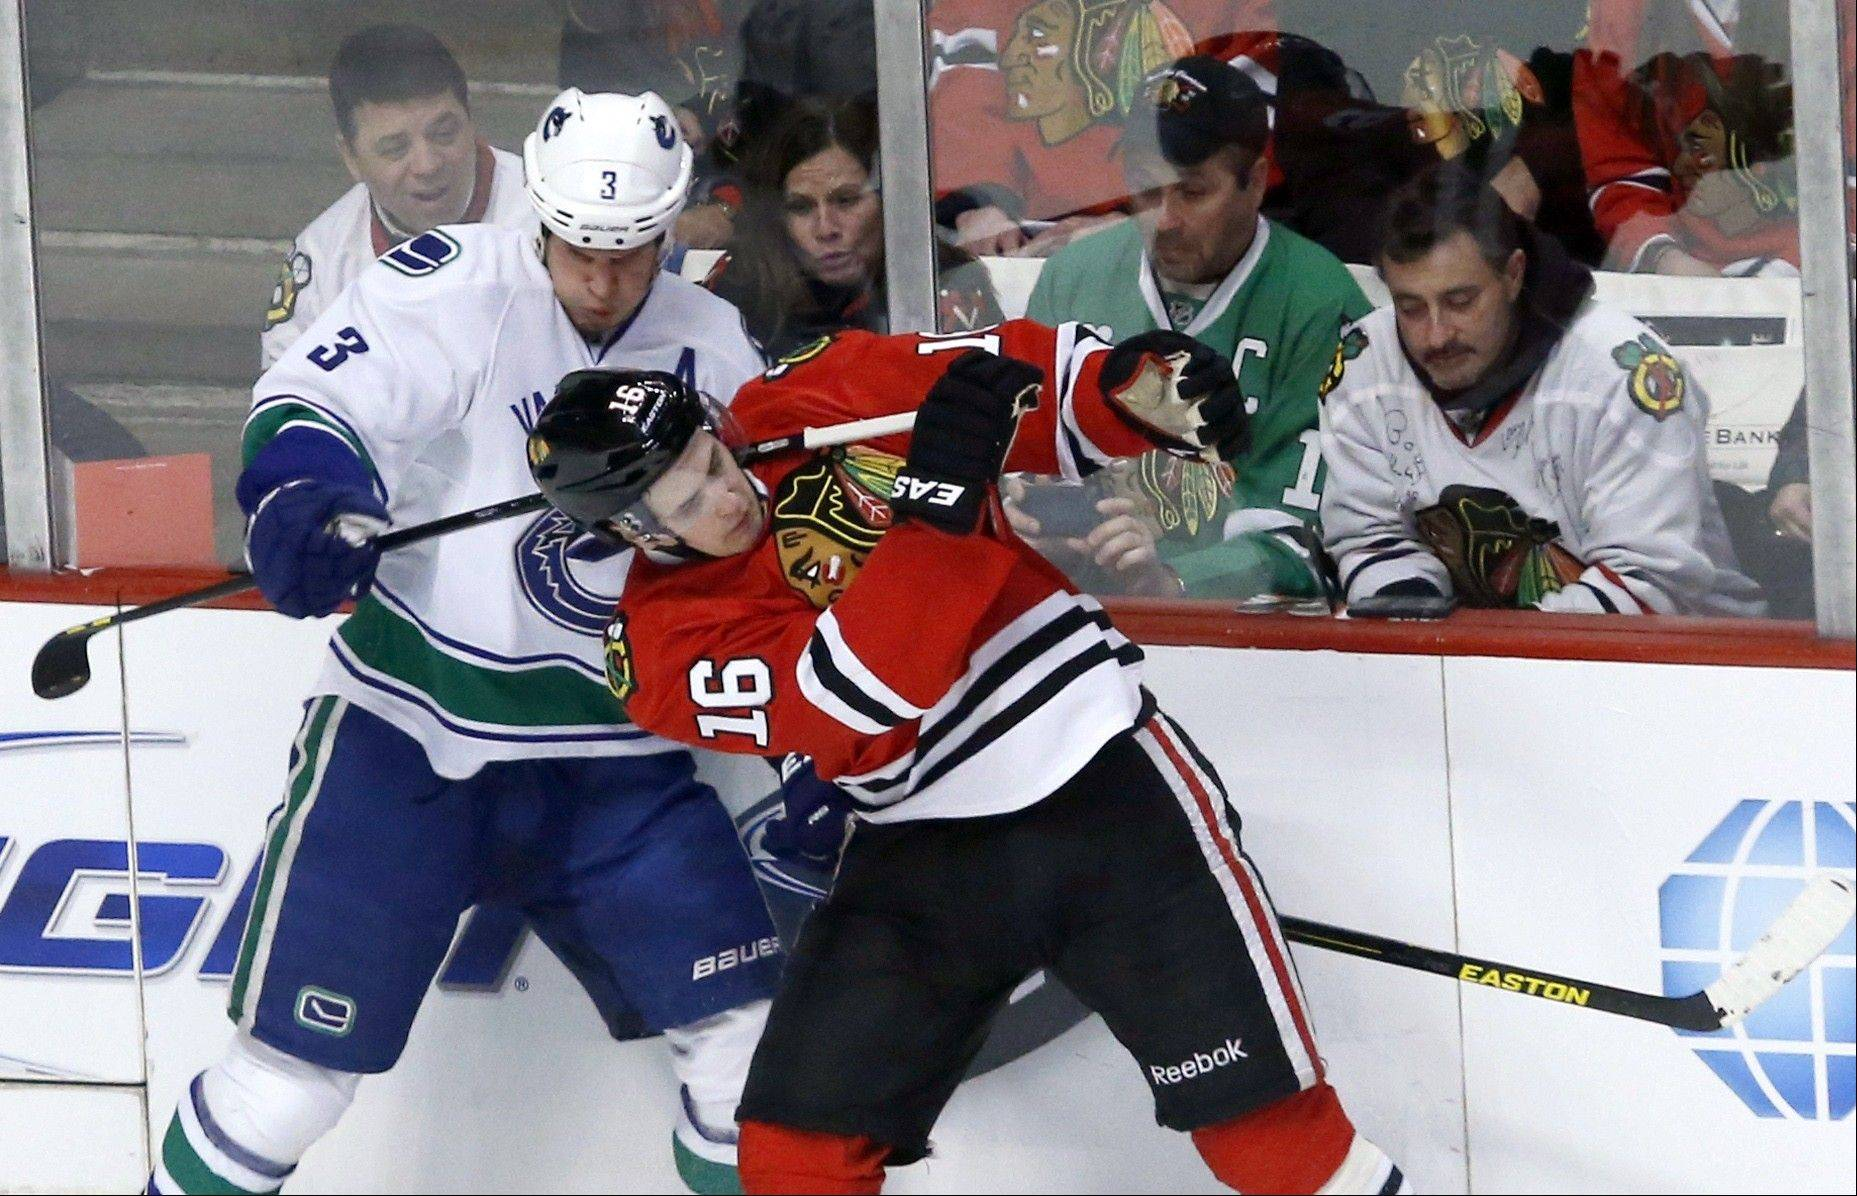 Vancouver Canucks defenseman Kevin Bieksa pulls back on the stick of Chicago Blackhawks center Marcus Kruger during the second period.